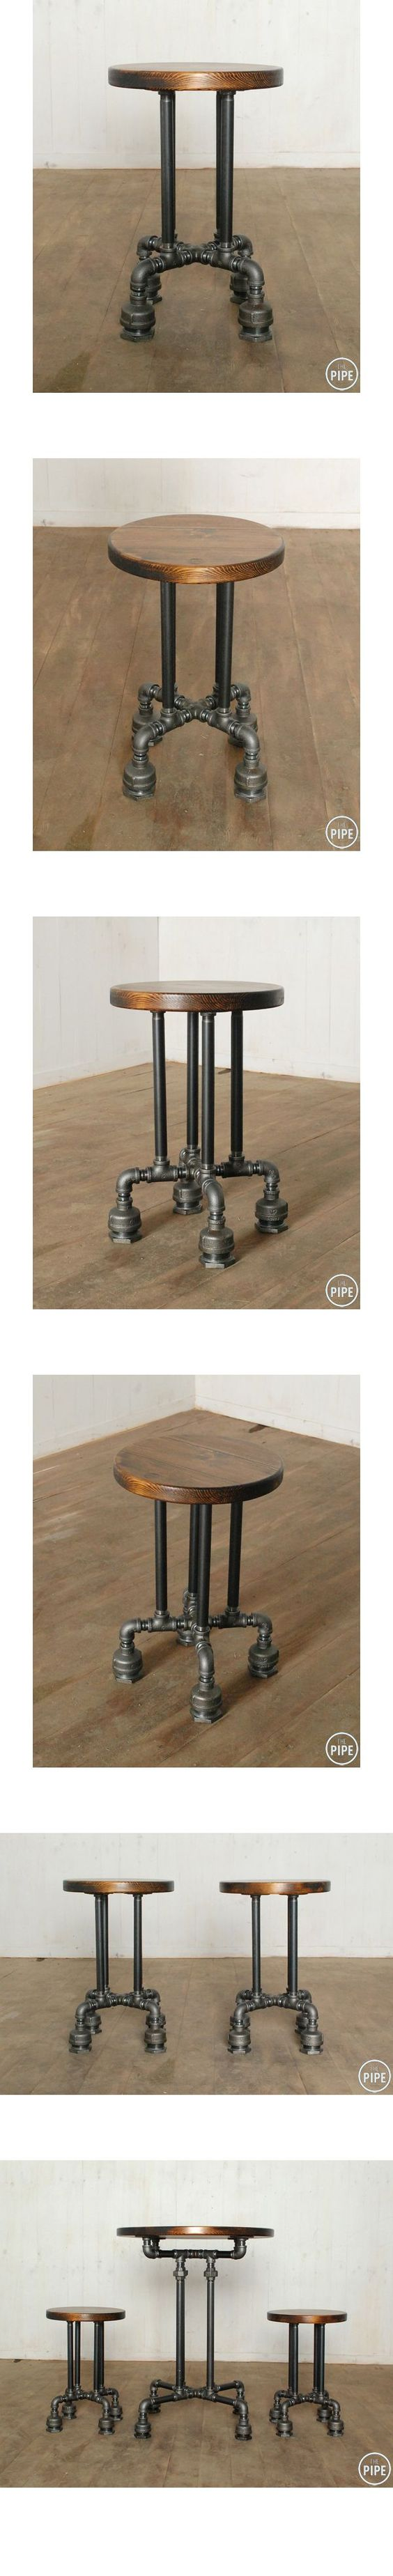 how to diy industrial coffee table woodworking diy